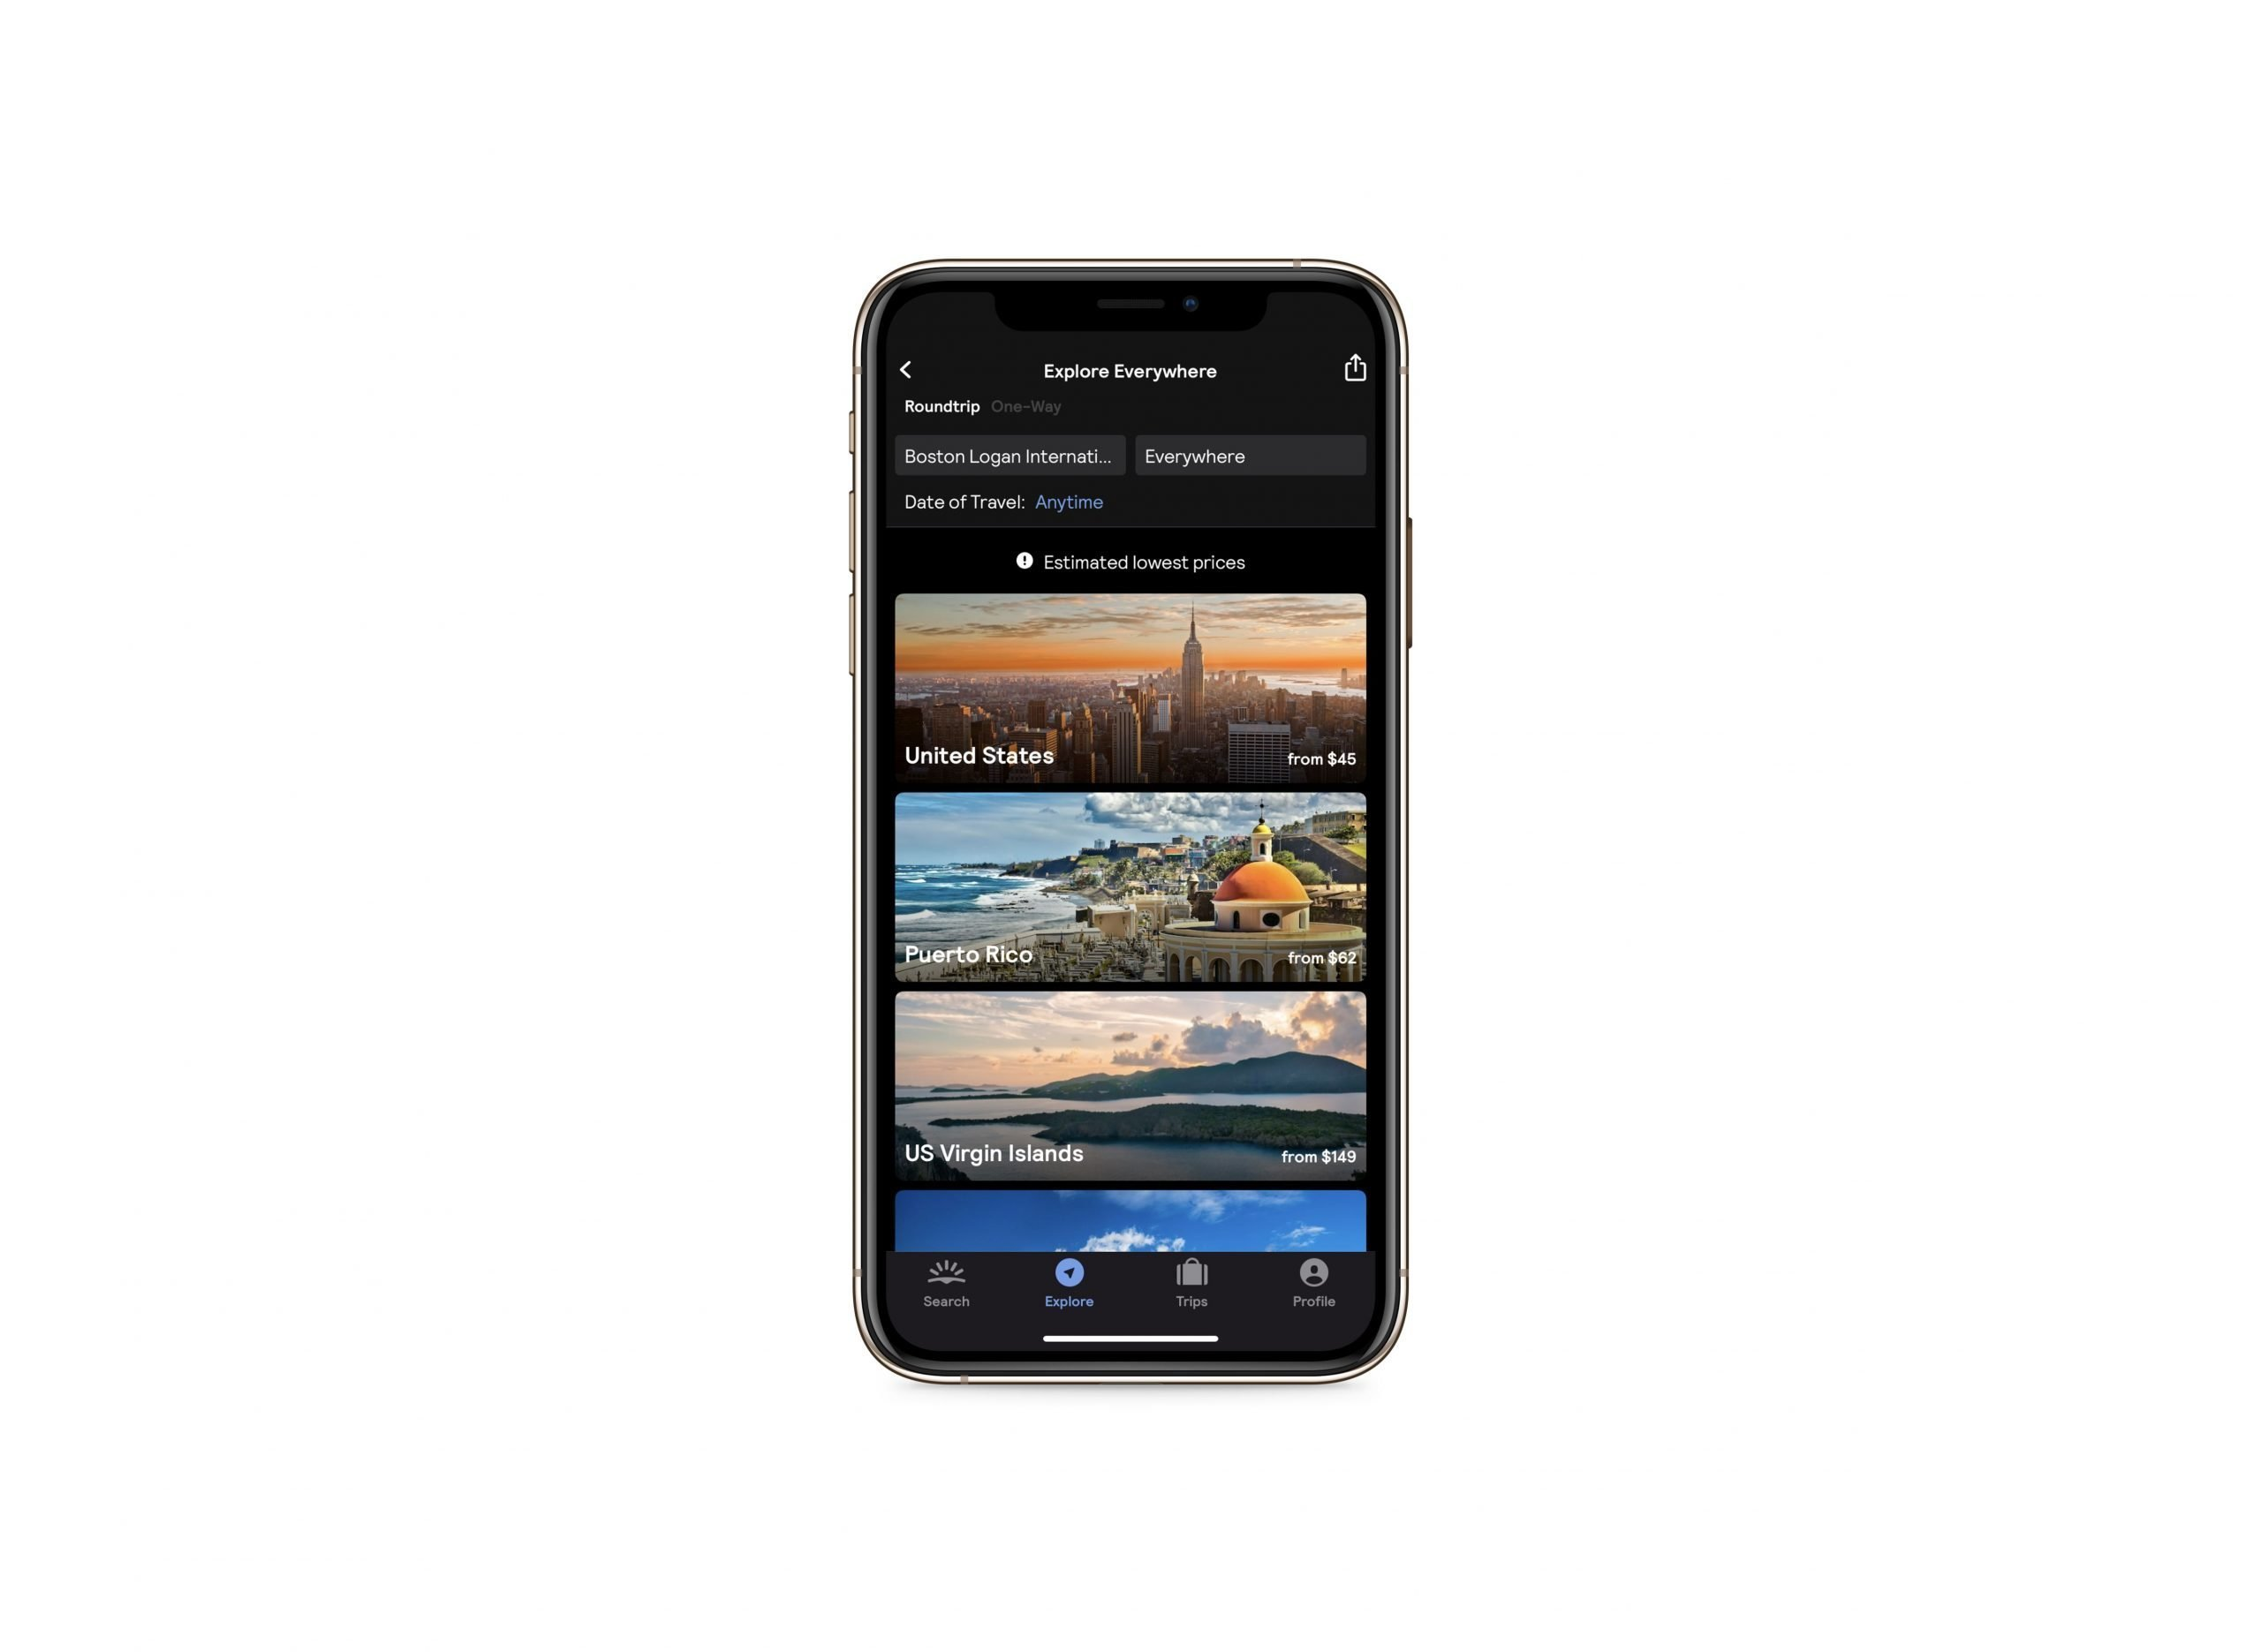 How to find cheap flights - Image of mobile phone showing the explore everywhere section of the Skyscanner app. There is an option to input your departure airport. The destination says everywhere and below is a list of countries and starting flight prices.